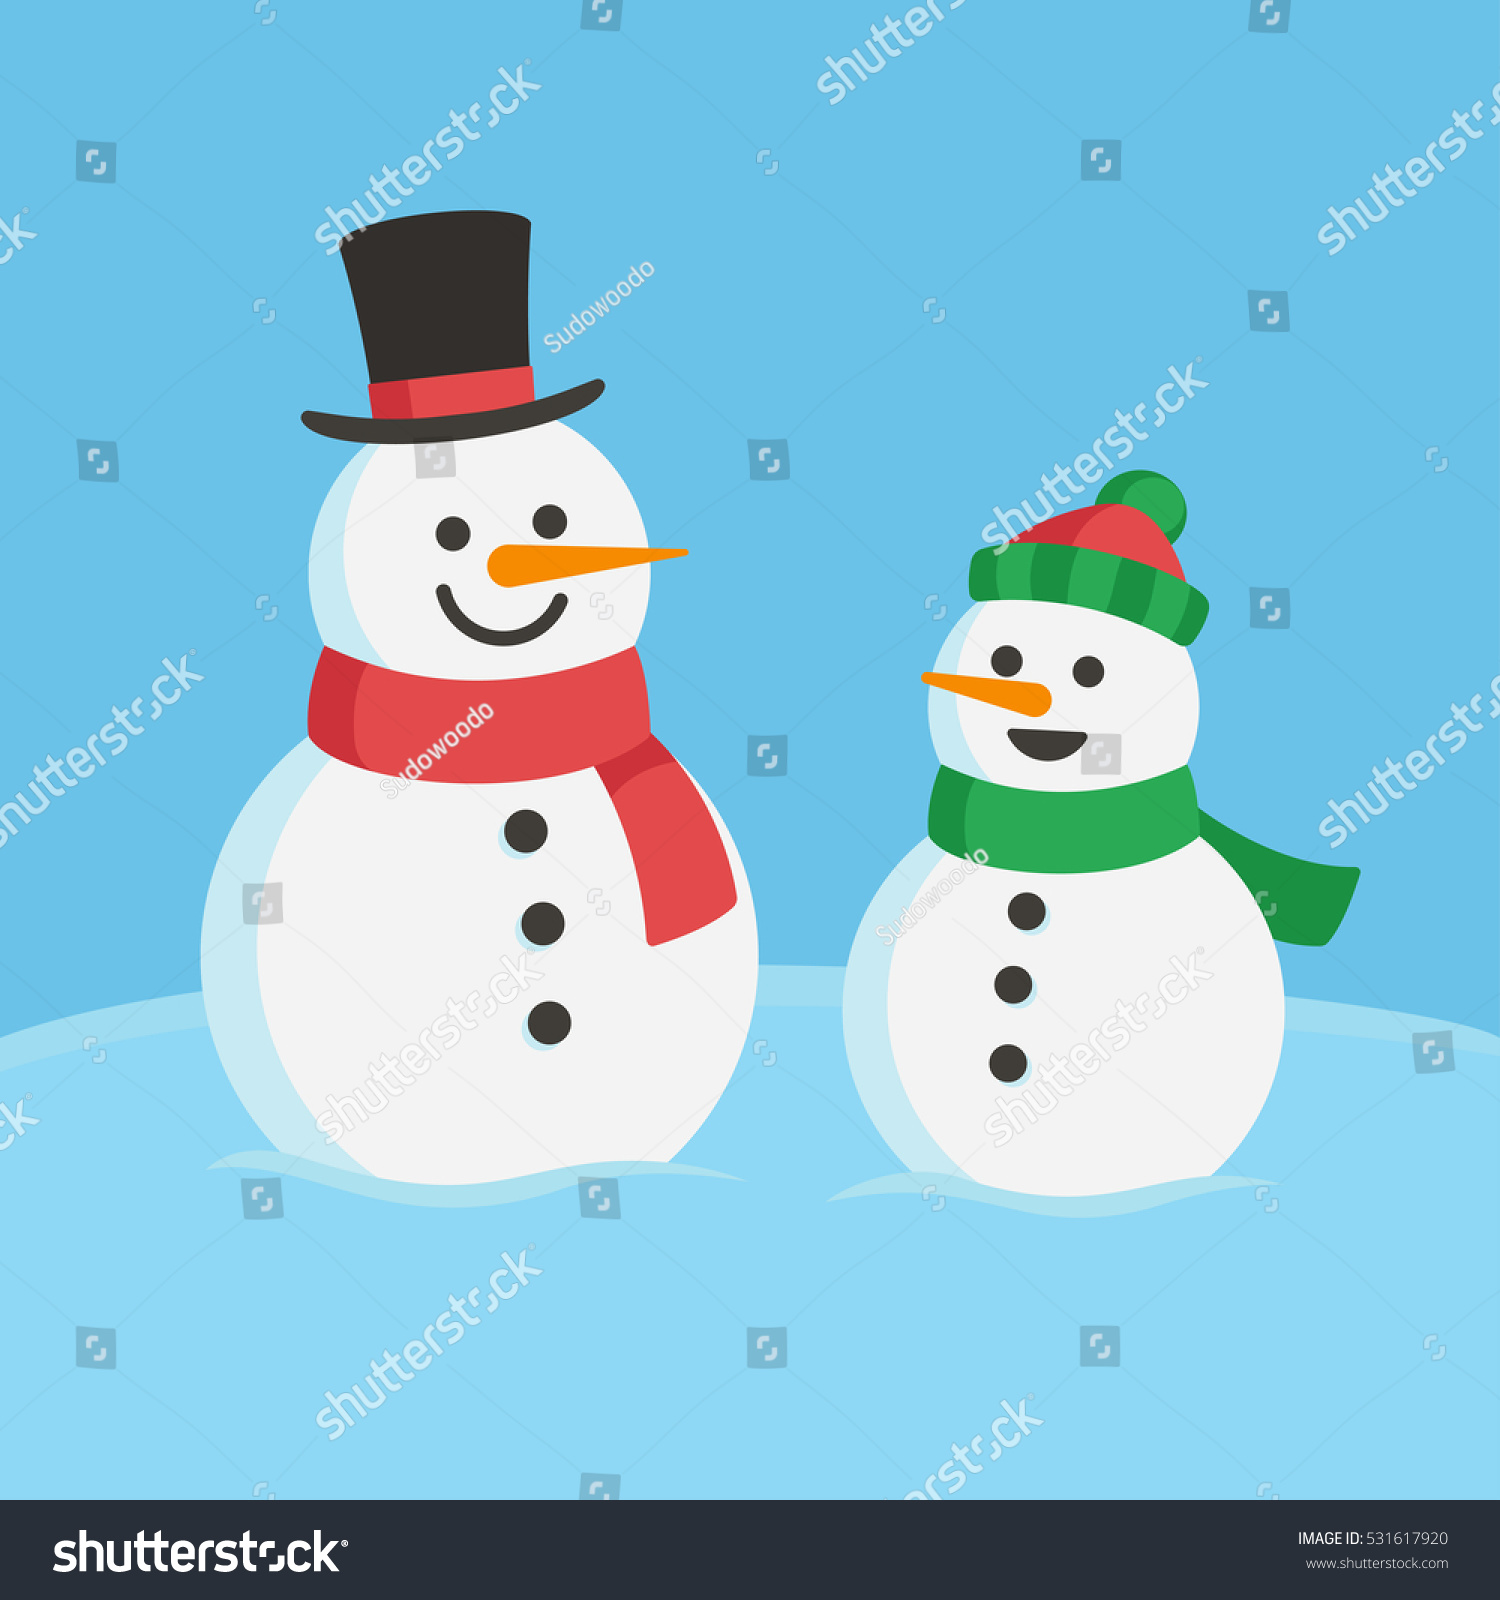 Snowman Family Christmas Illustration Two Cute Stock Vector (Royalty ... 4b4cf30aa68